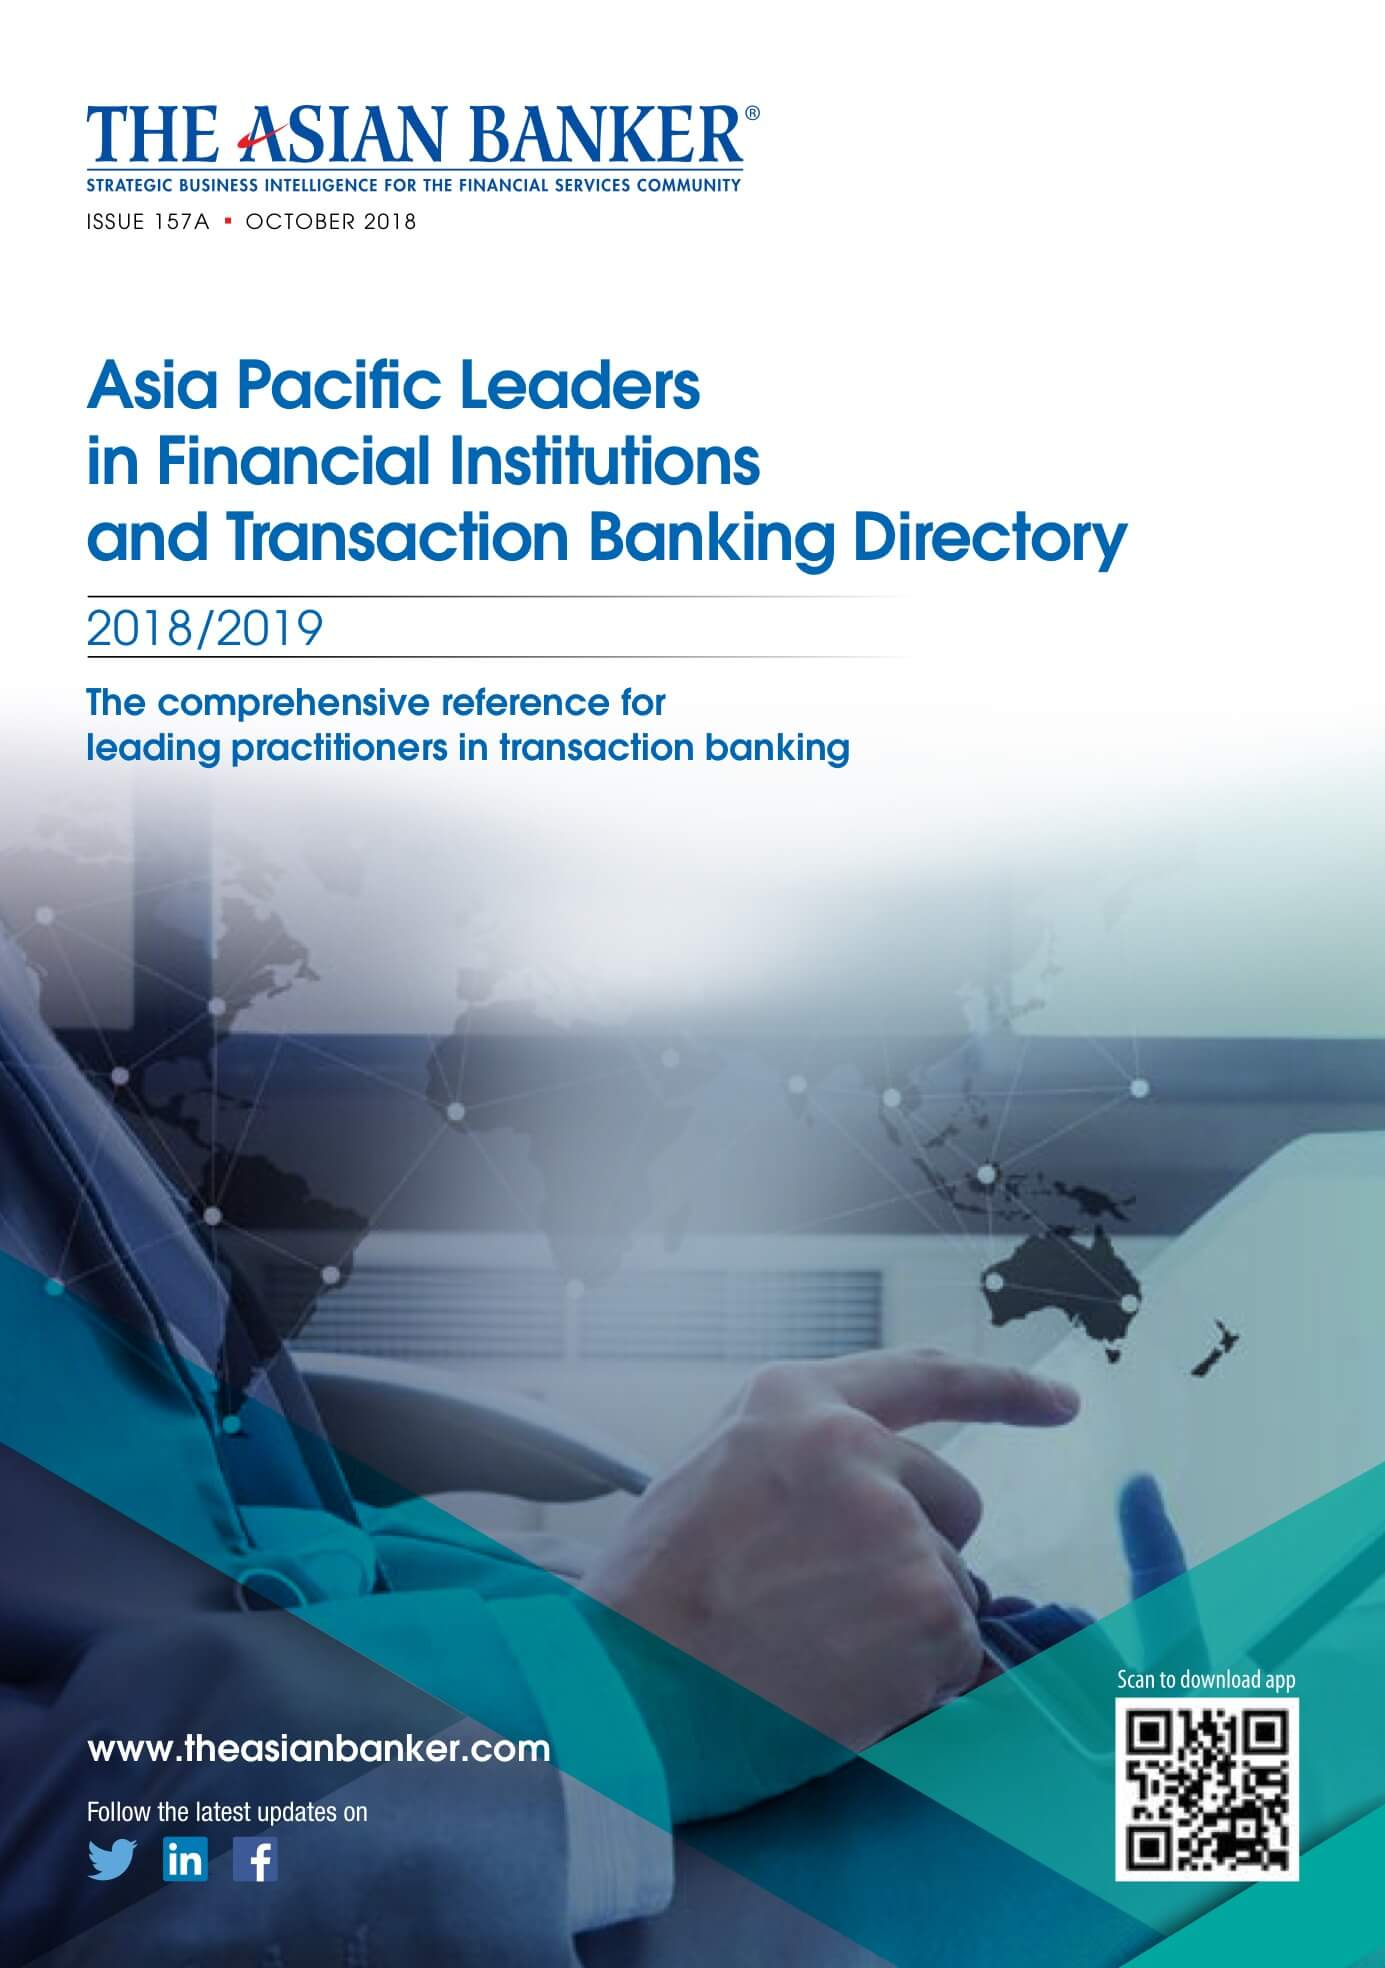 The Asian Banker Publication Online | The Asian Banker